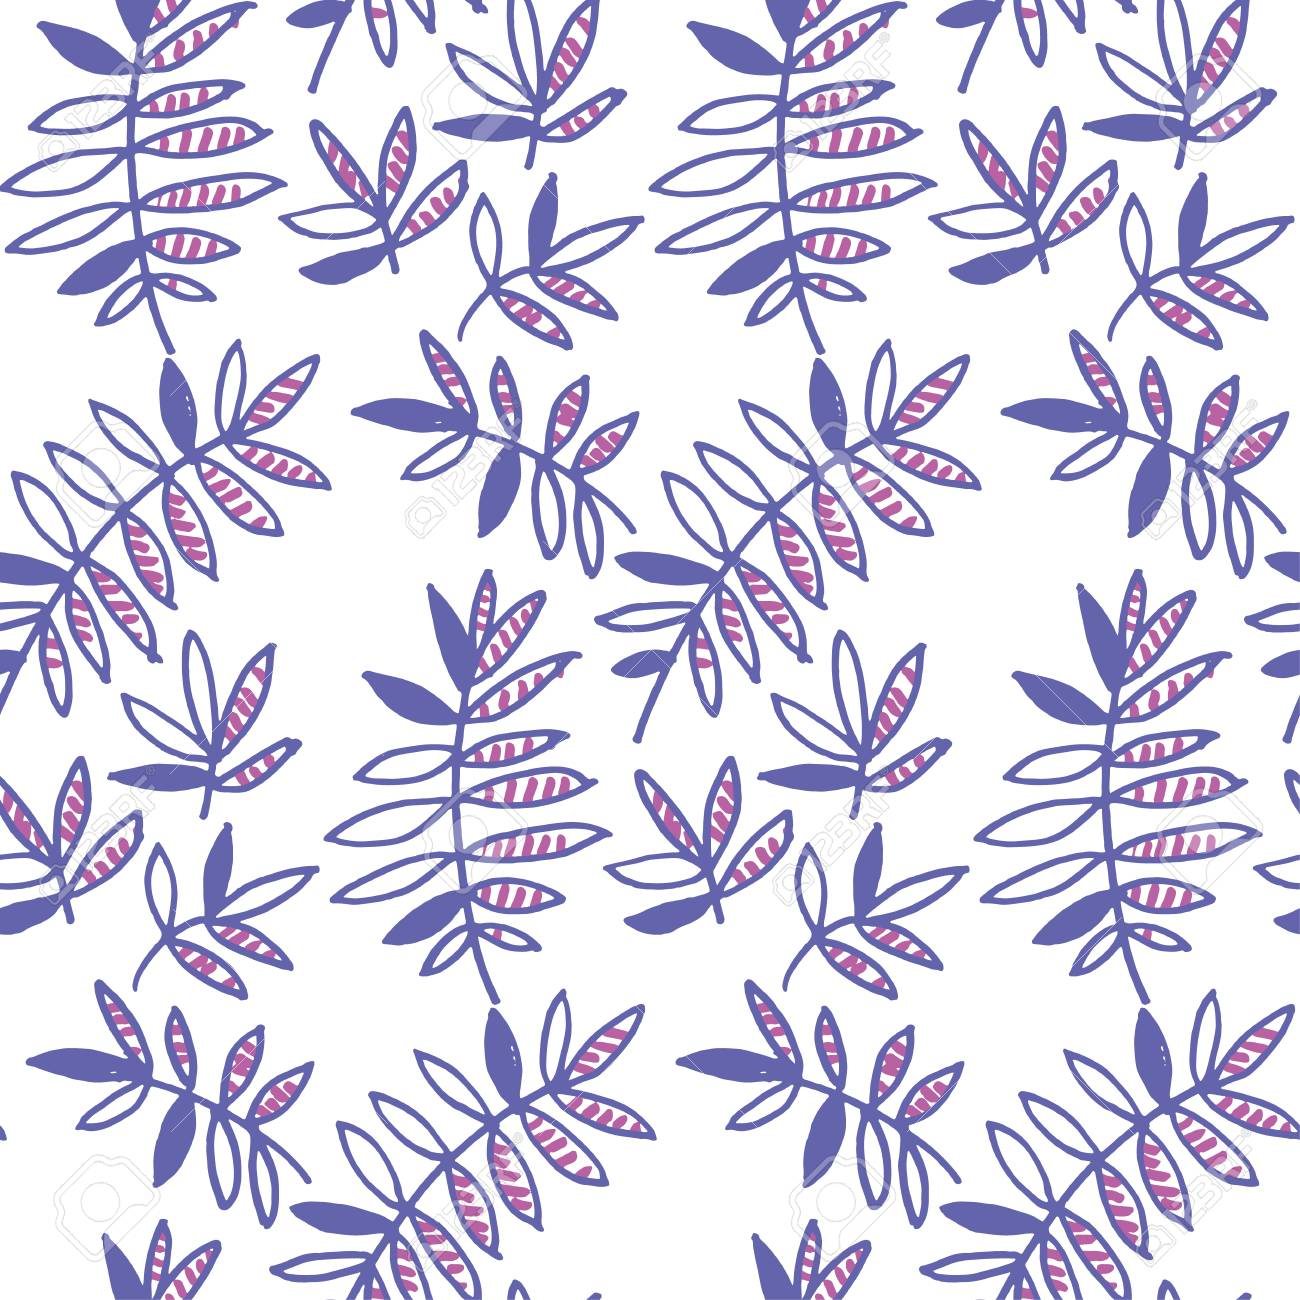 Tender Violet Floral Motif Vector Illustration Tropical Leaves Royalty Free Cliparts Vectors And Stock Illustration Image 79453526 Download this free vector about collection of tropical leaves, and discover more than 10 million professional graphic resources on freepik. 123rf com